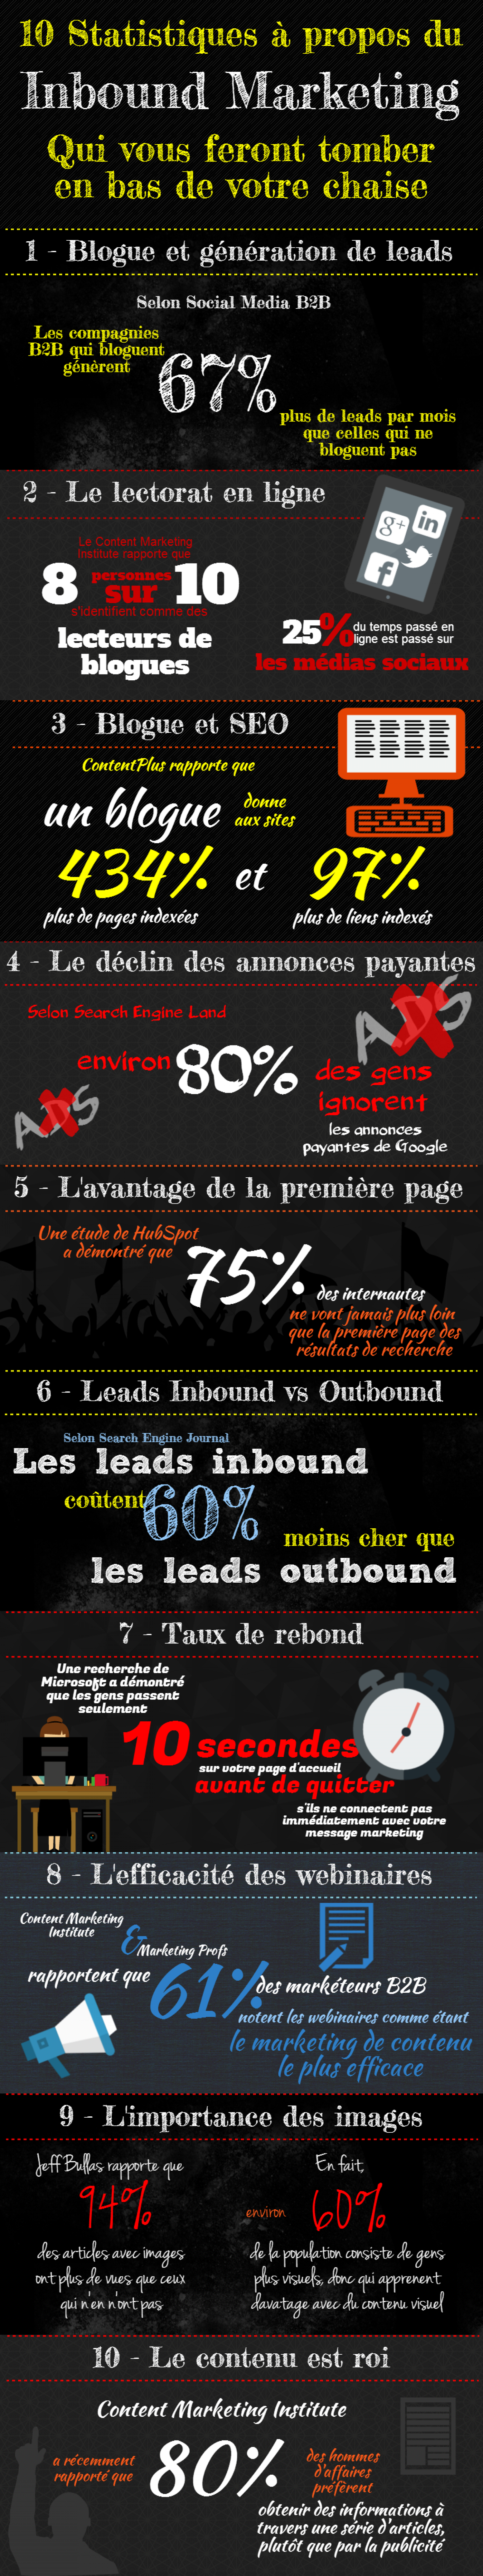 10 Statistiques à Propos du Inbound Marketing Infographic